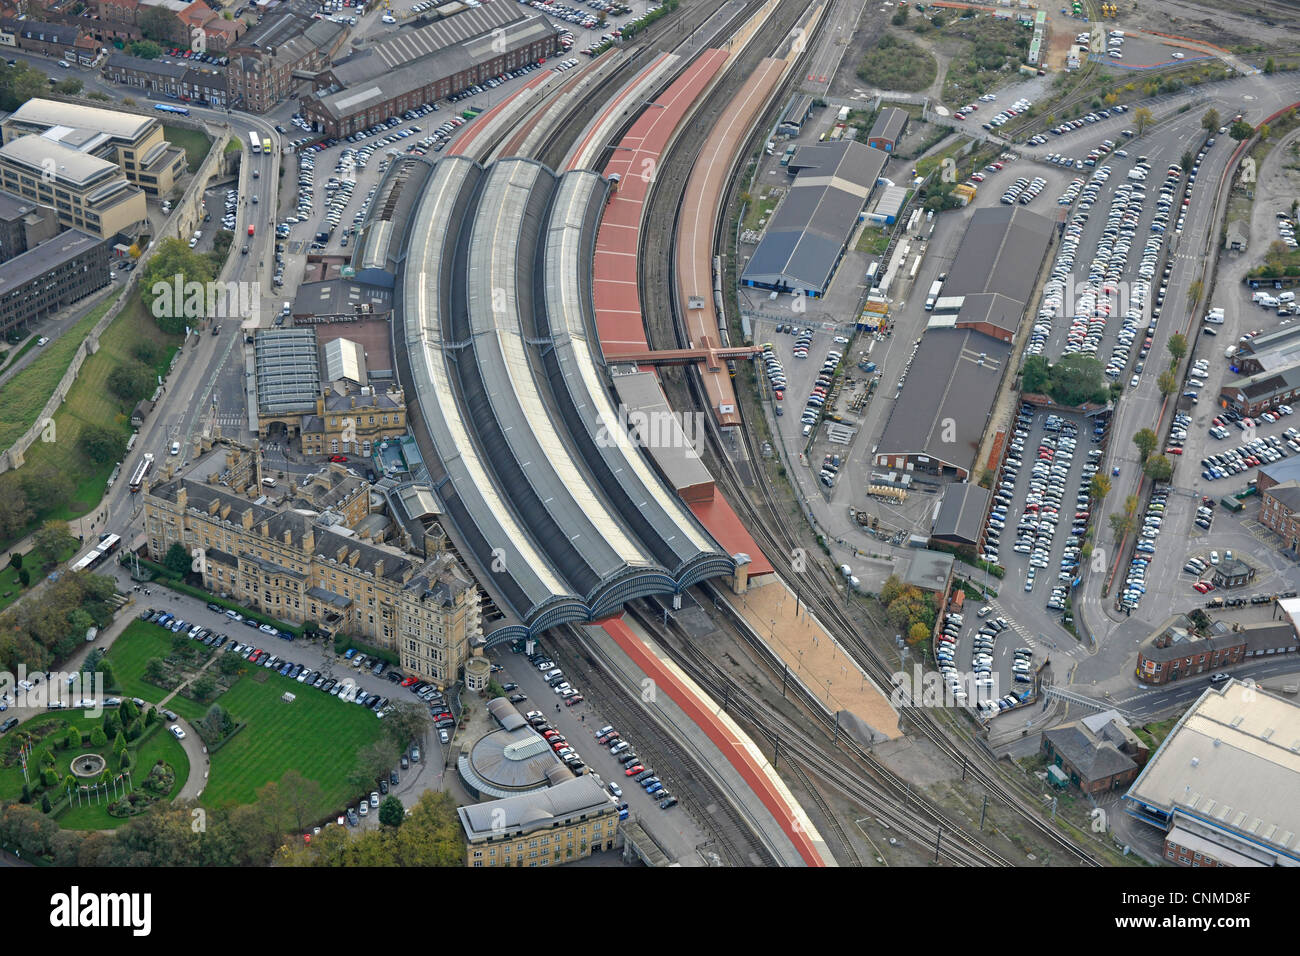 Aerial Photograph Of York City Railway Station And ...